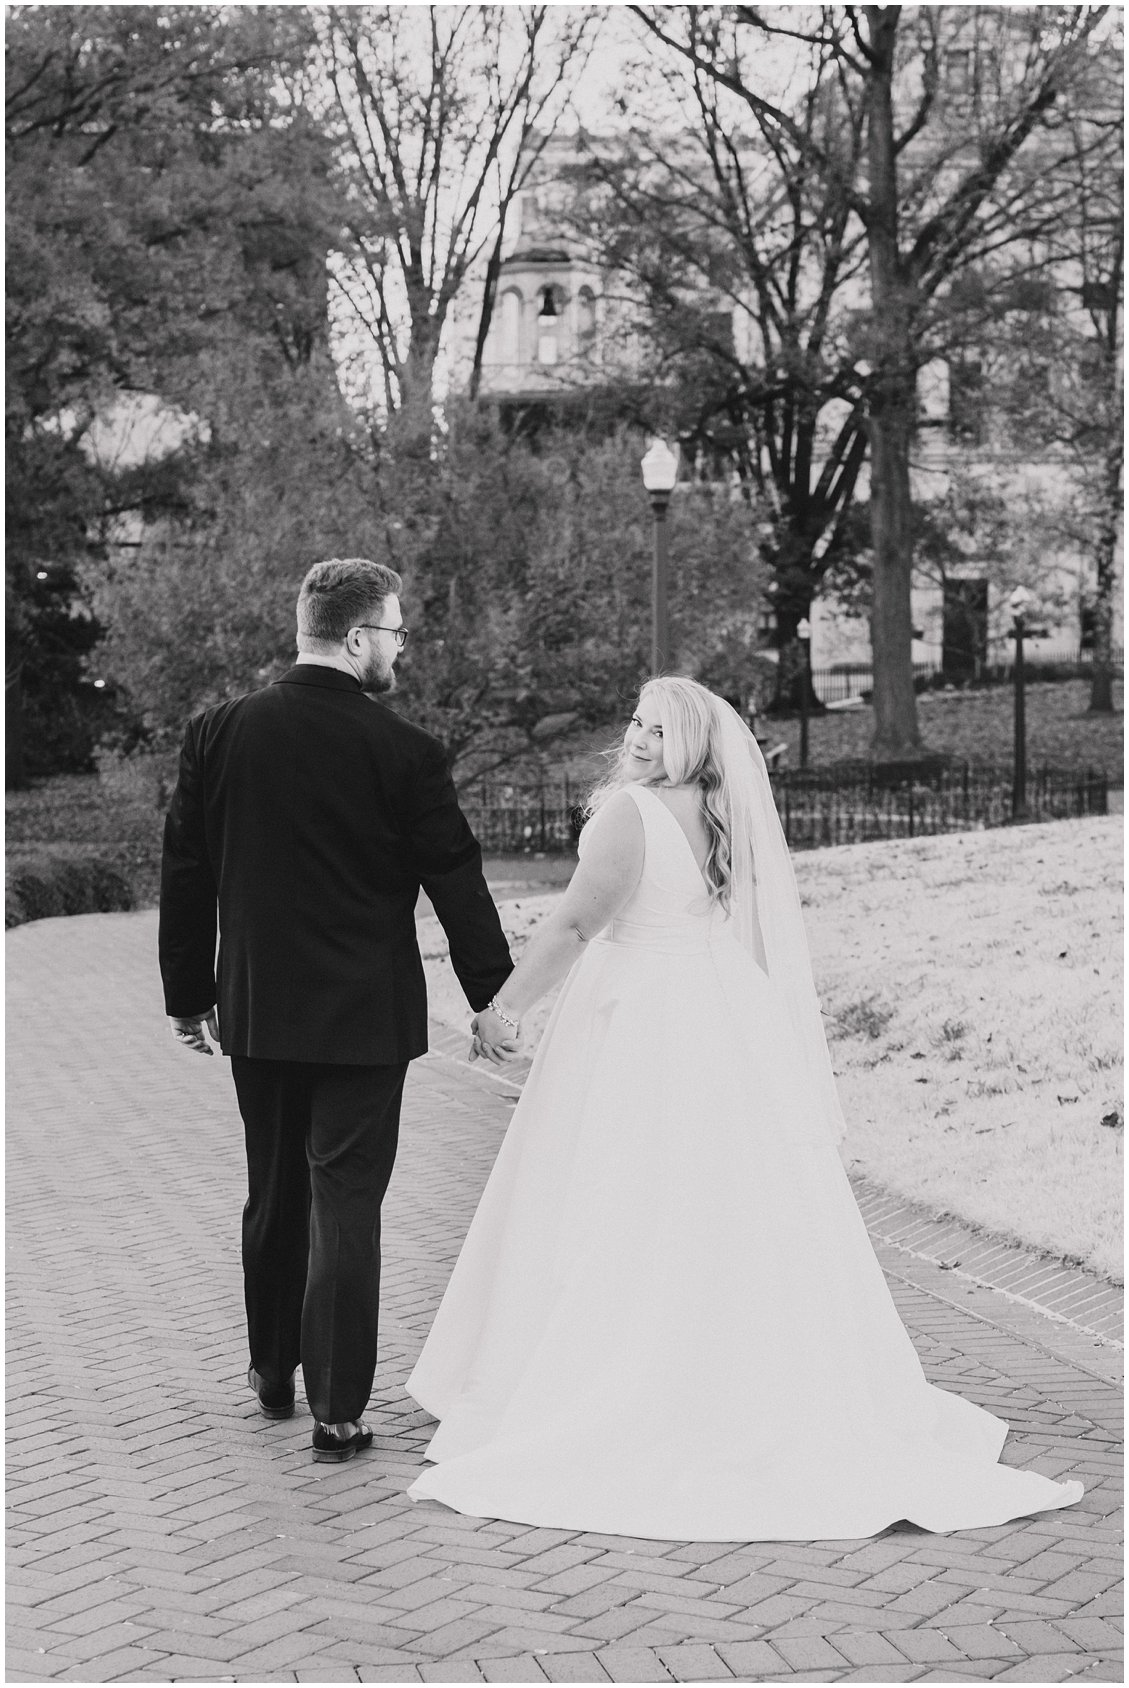 Black & White romantic photo of Bride and Groom in downtown Richmond, Virginia captured by Tara & Stephen - a husband and wife photography team